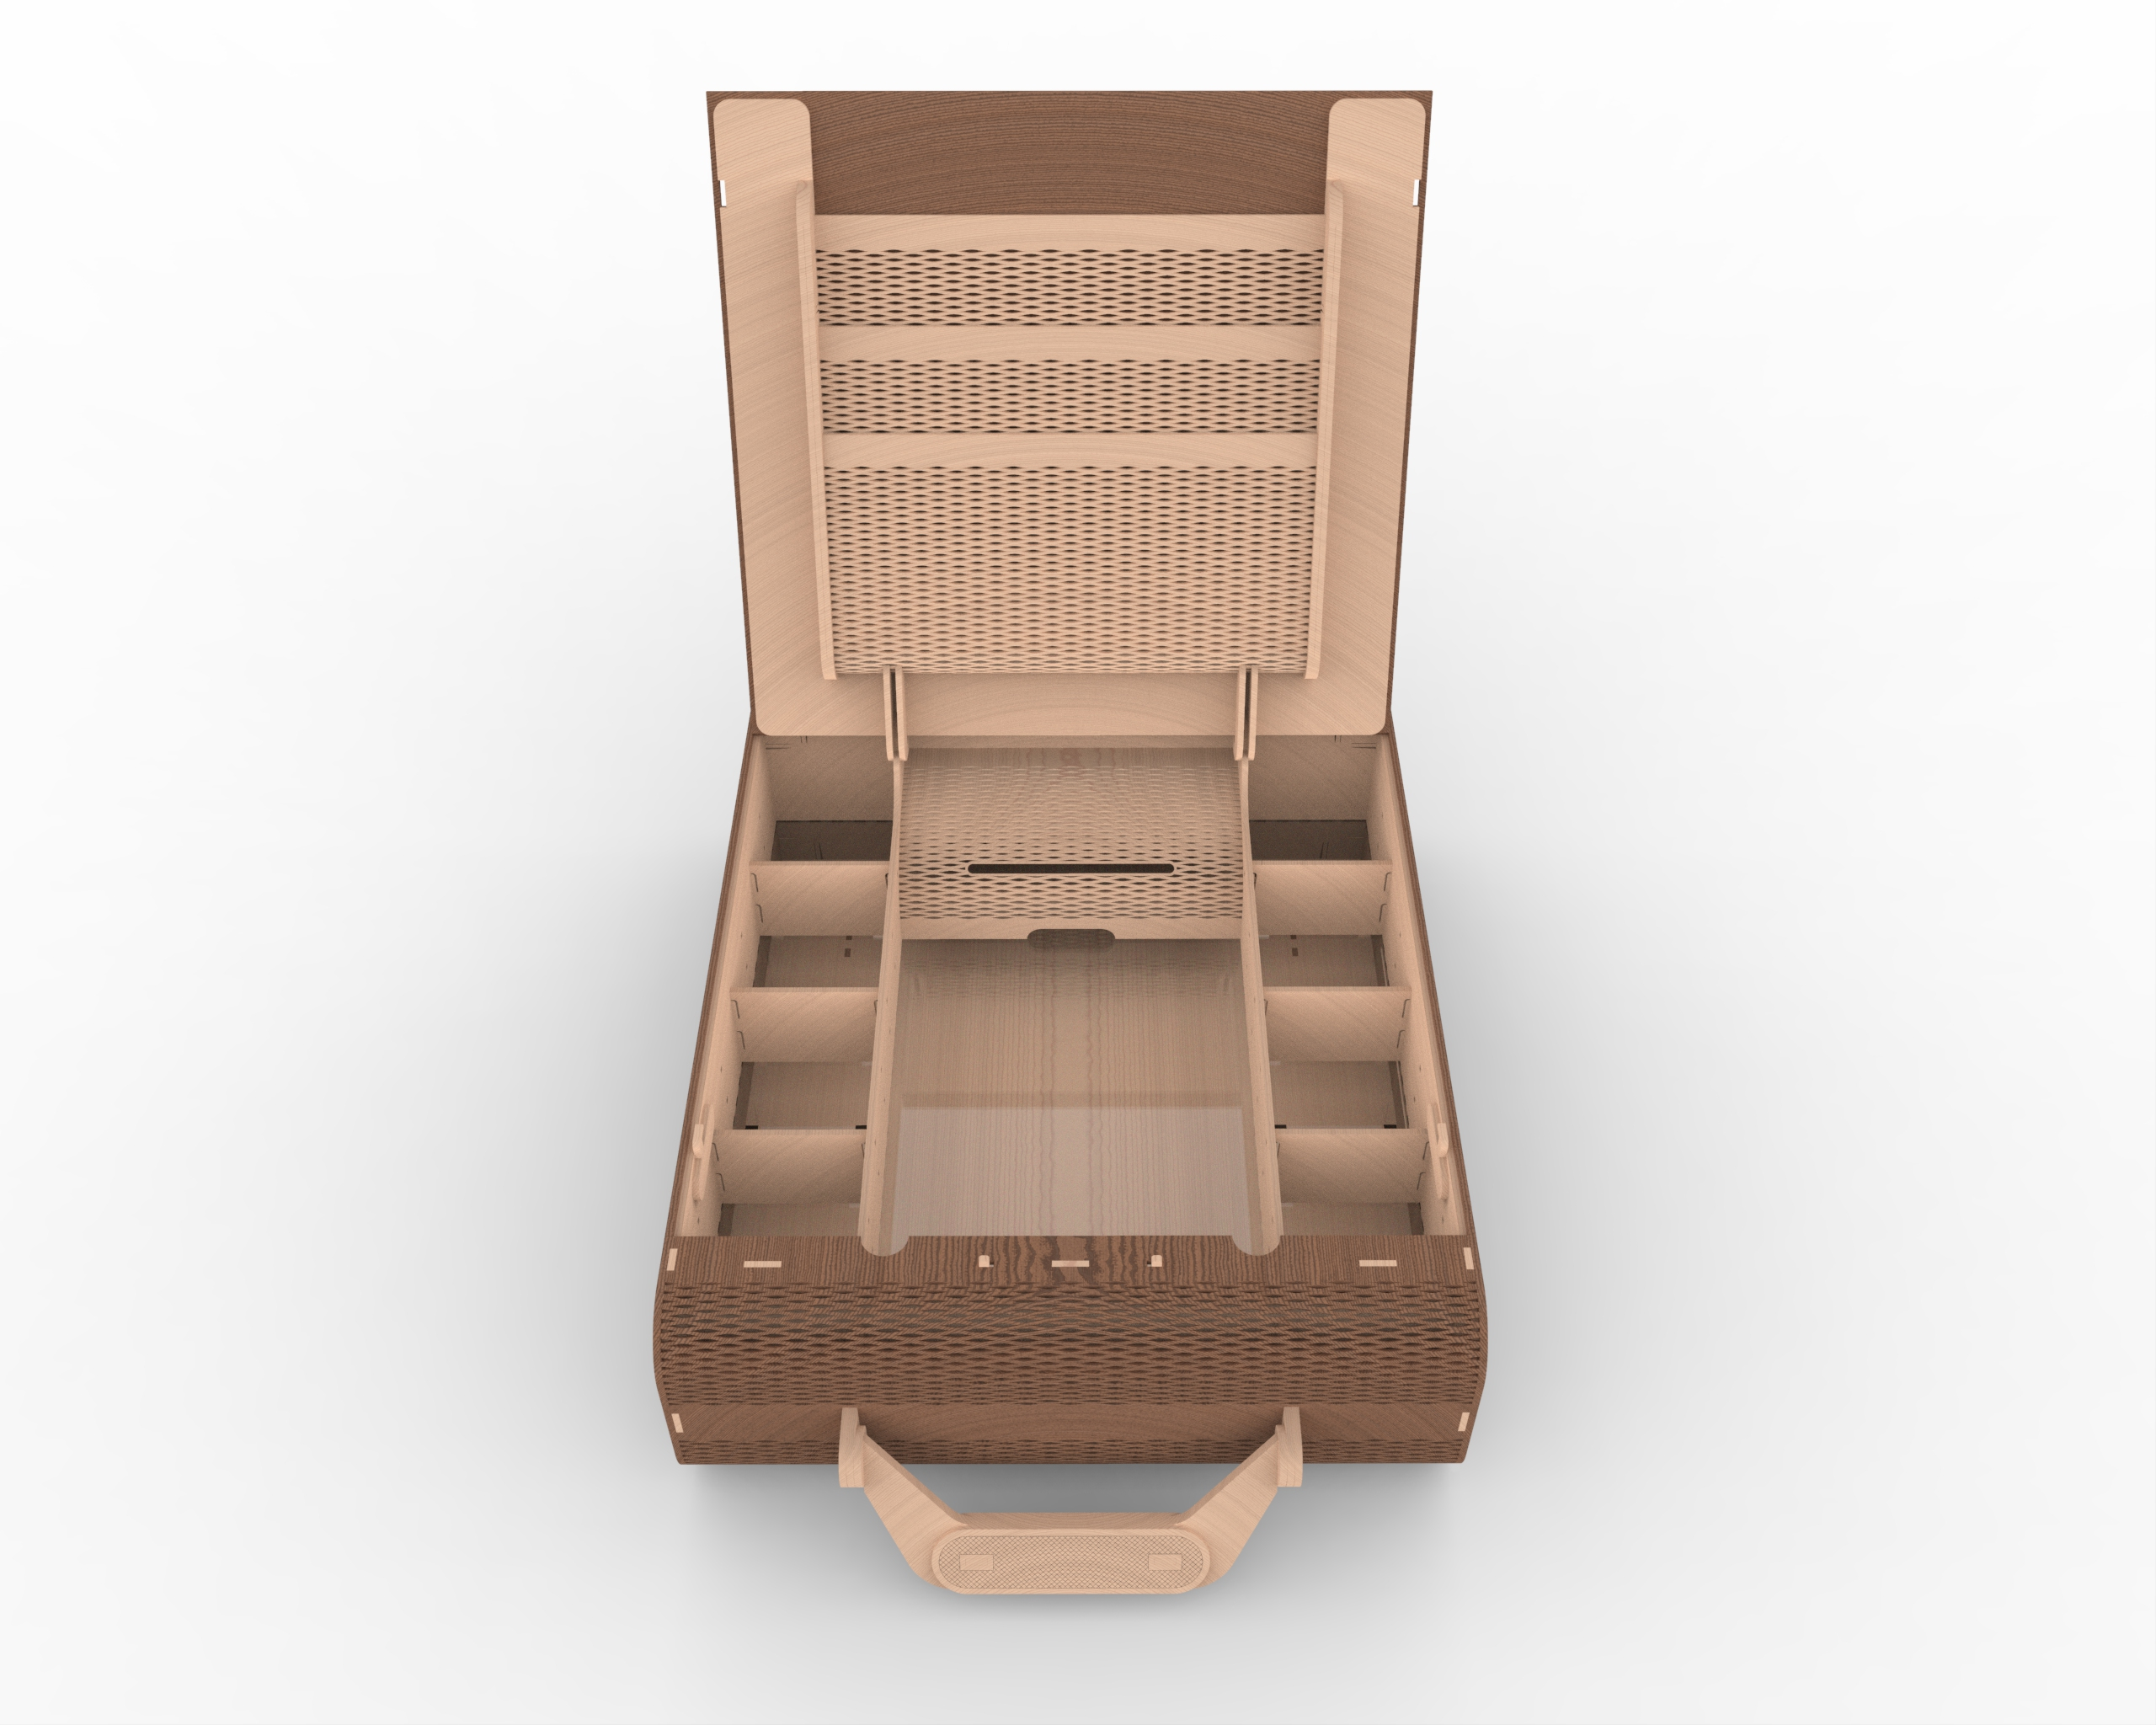 Picture of The Co-Archiving Toolbox